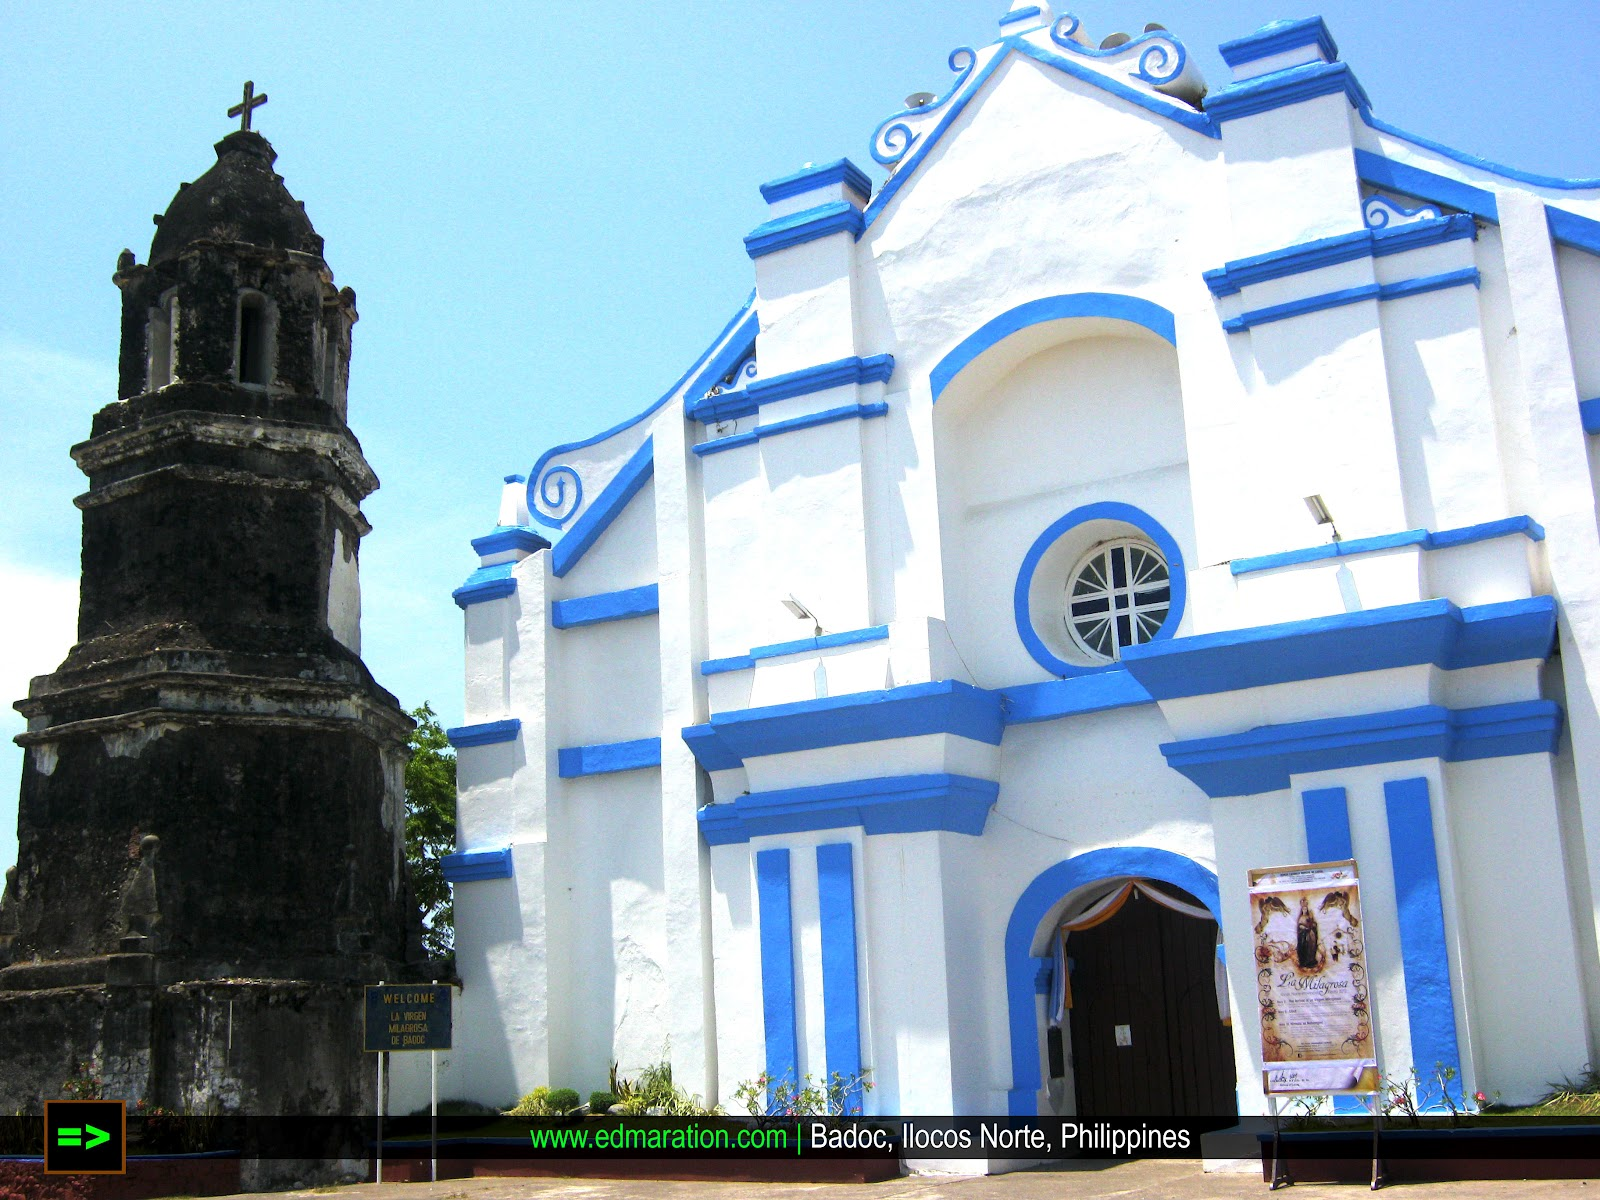 Badoc Church | Black Belfry Over White Façade